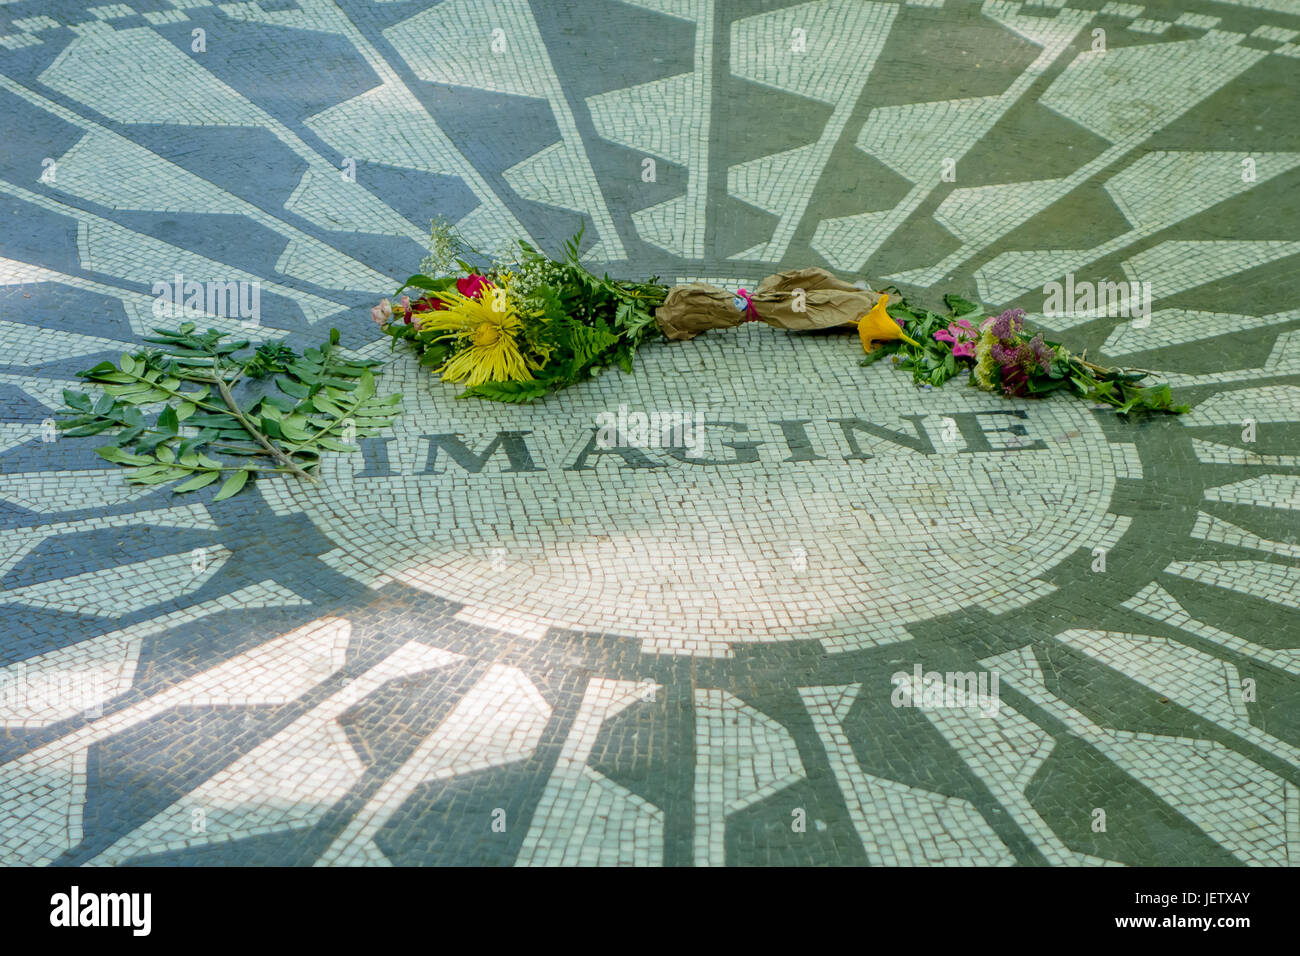 NEW YORK, USA - NOVEMBER 22, 2016: Strawberry Fields mosaic in the floor of Central park in New York City, USA. - Stock Image